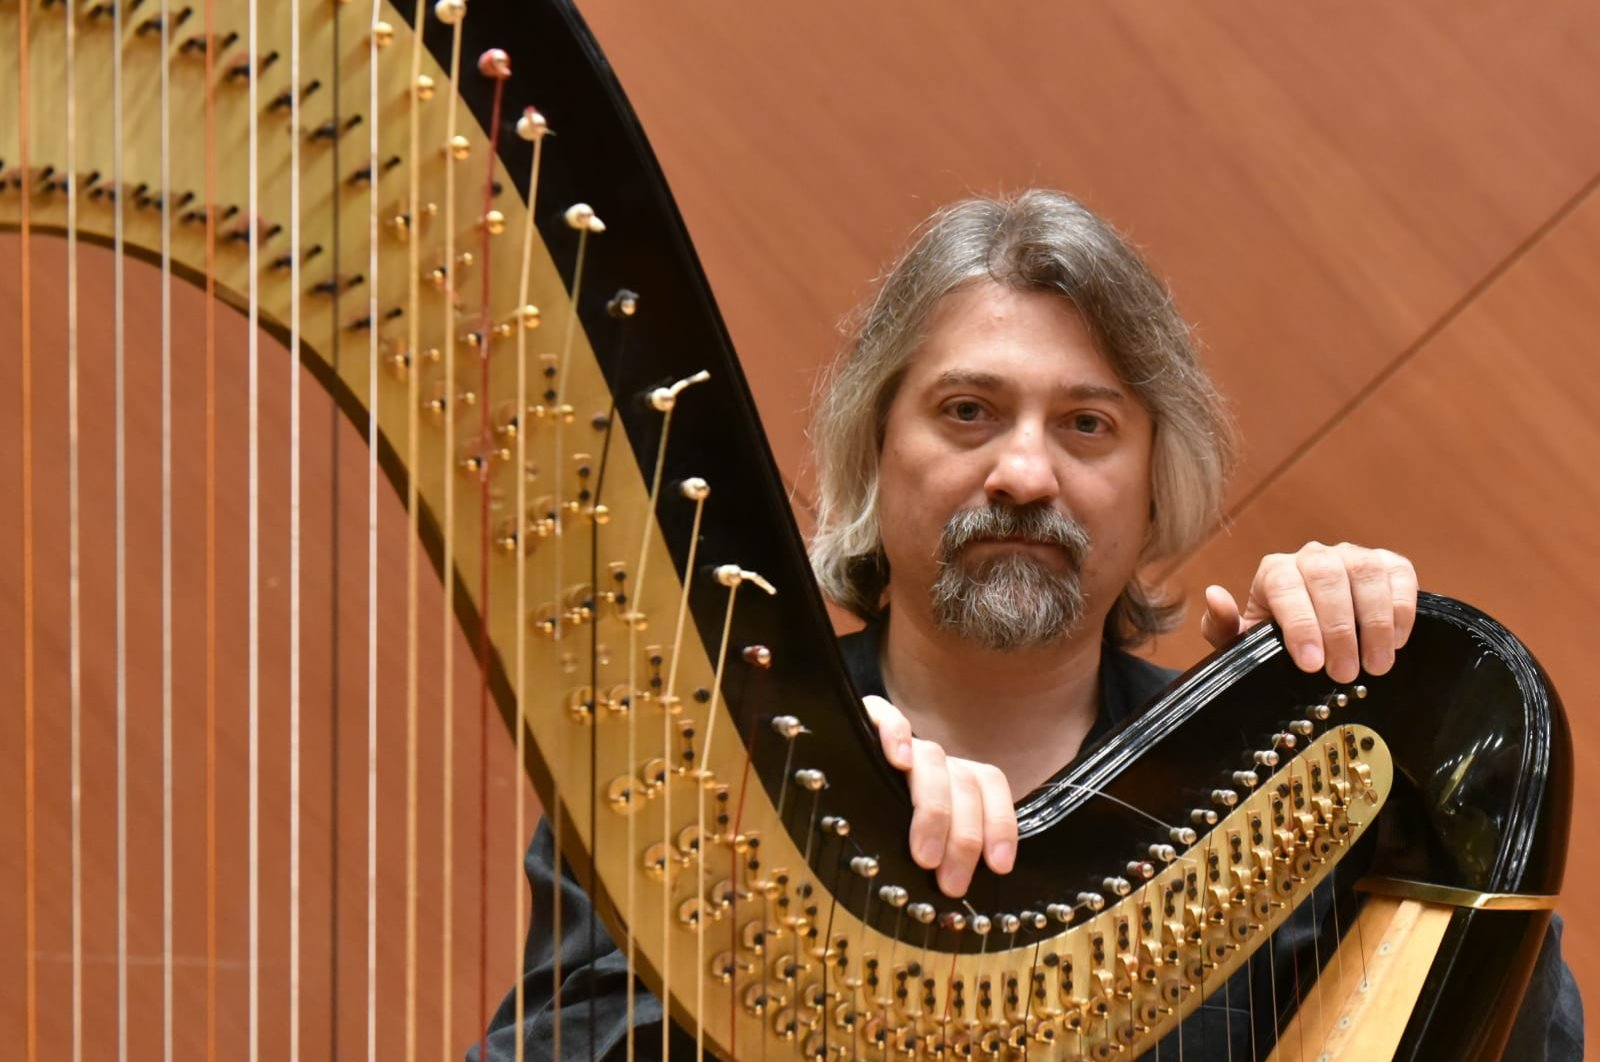 Çağatay Akyol poses with his harp in this undated photo.